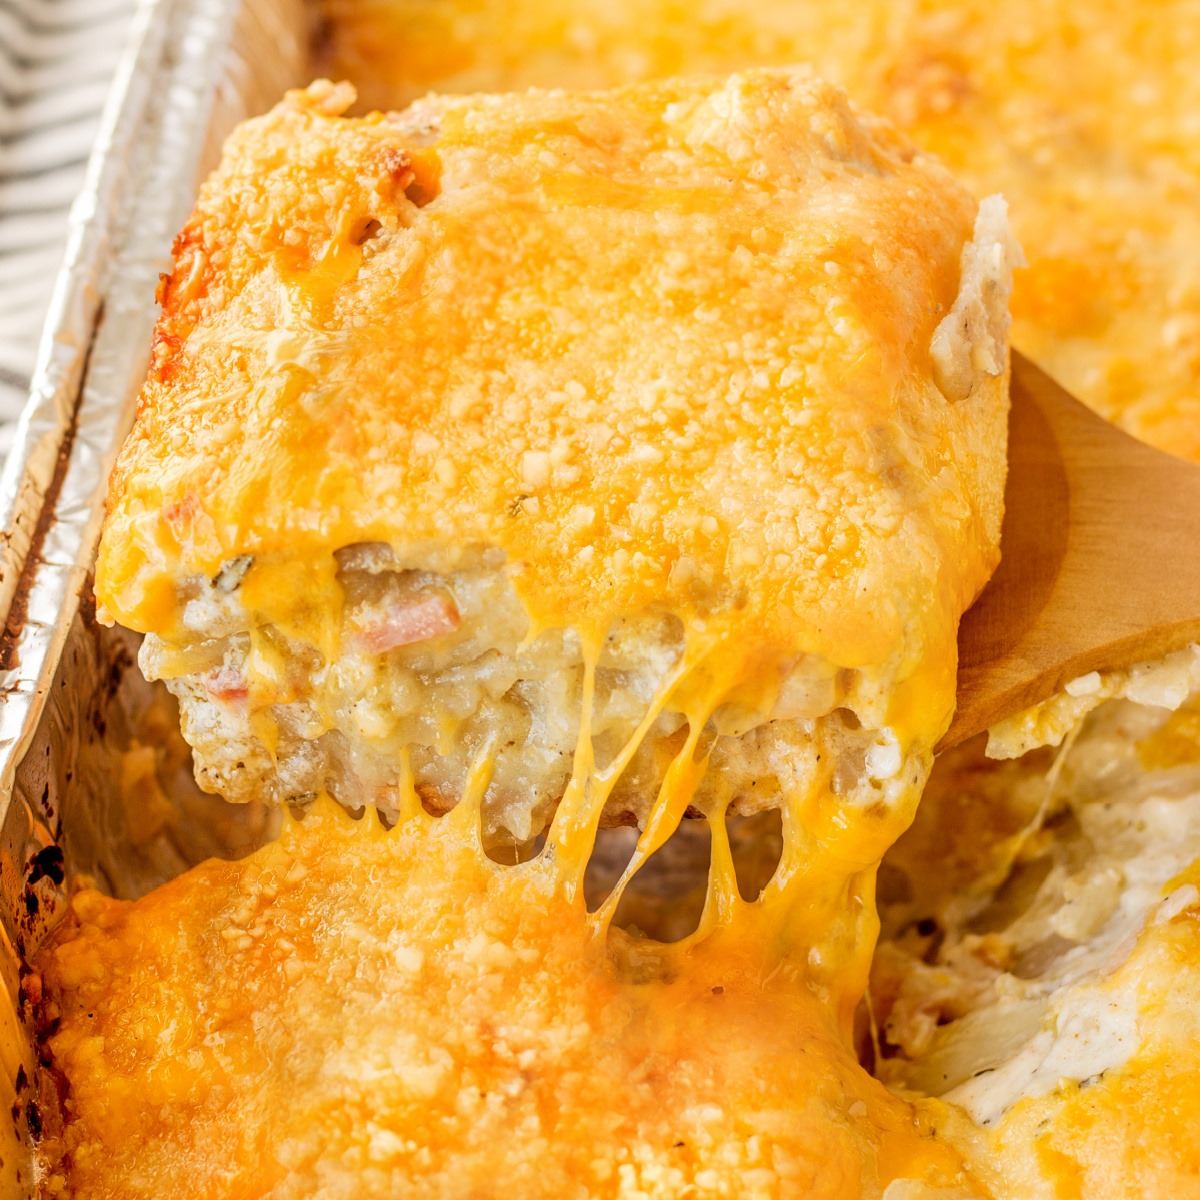 Slice of Smoked Scalloped Potatoes with Ham being lifted out of the pan with a wooden spoon